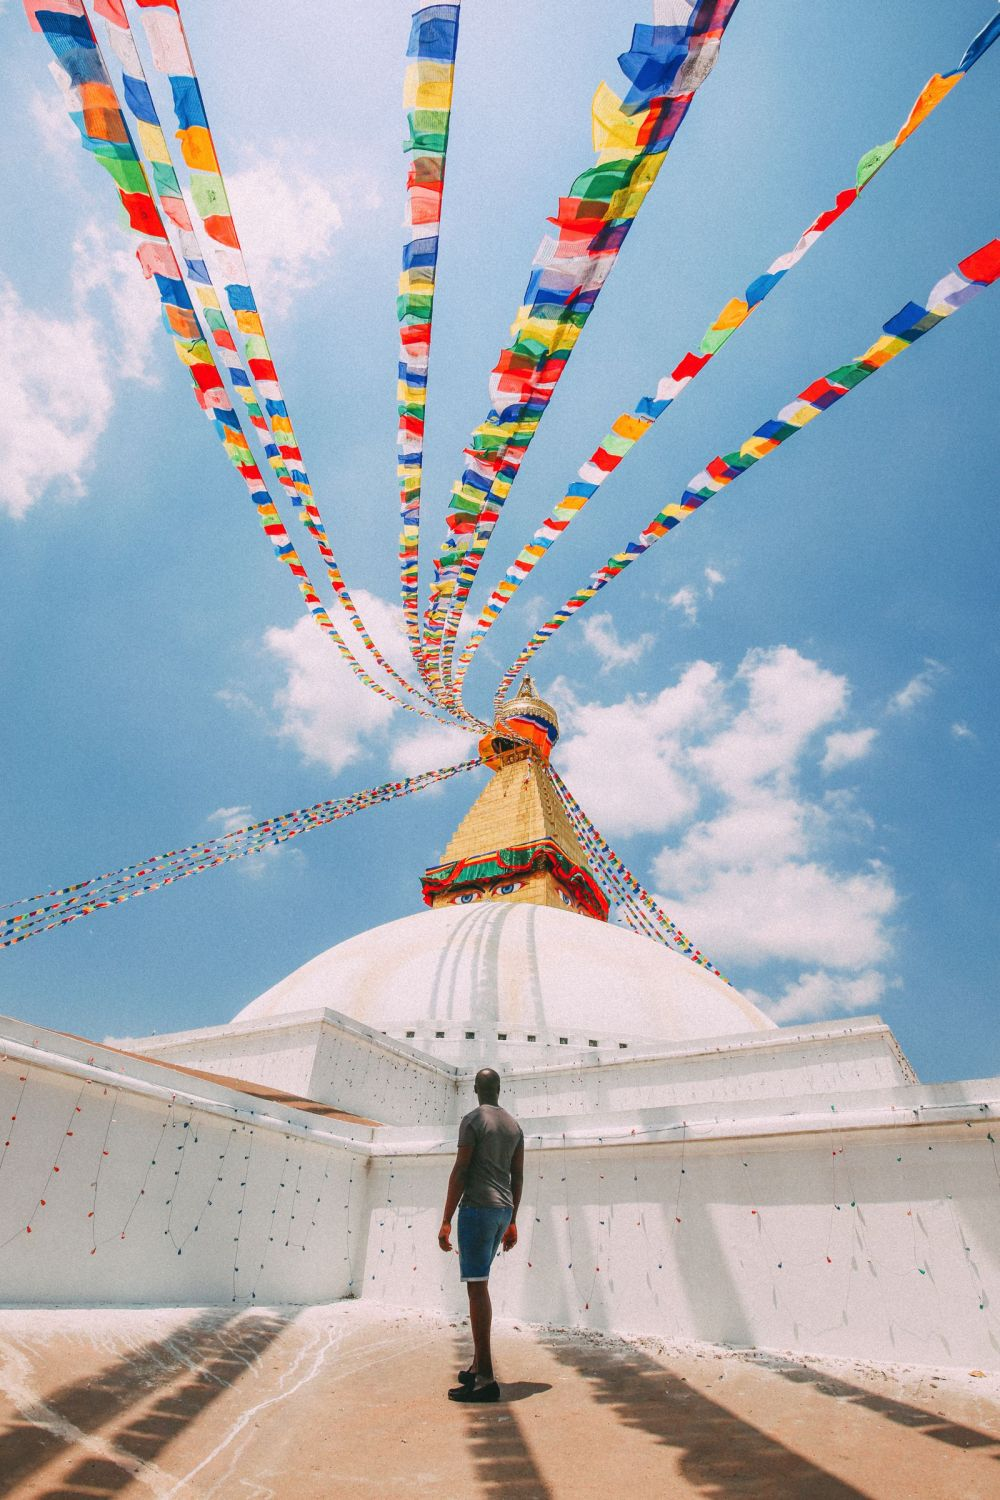 The UNESCO World Heritage Site Of Boudhanath Stupa In Kathmandu, Nepal (11)